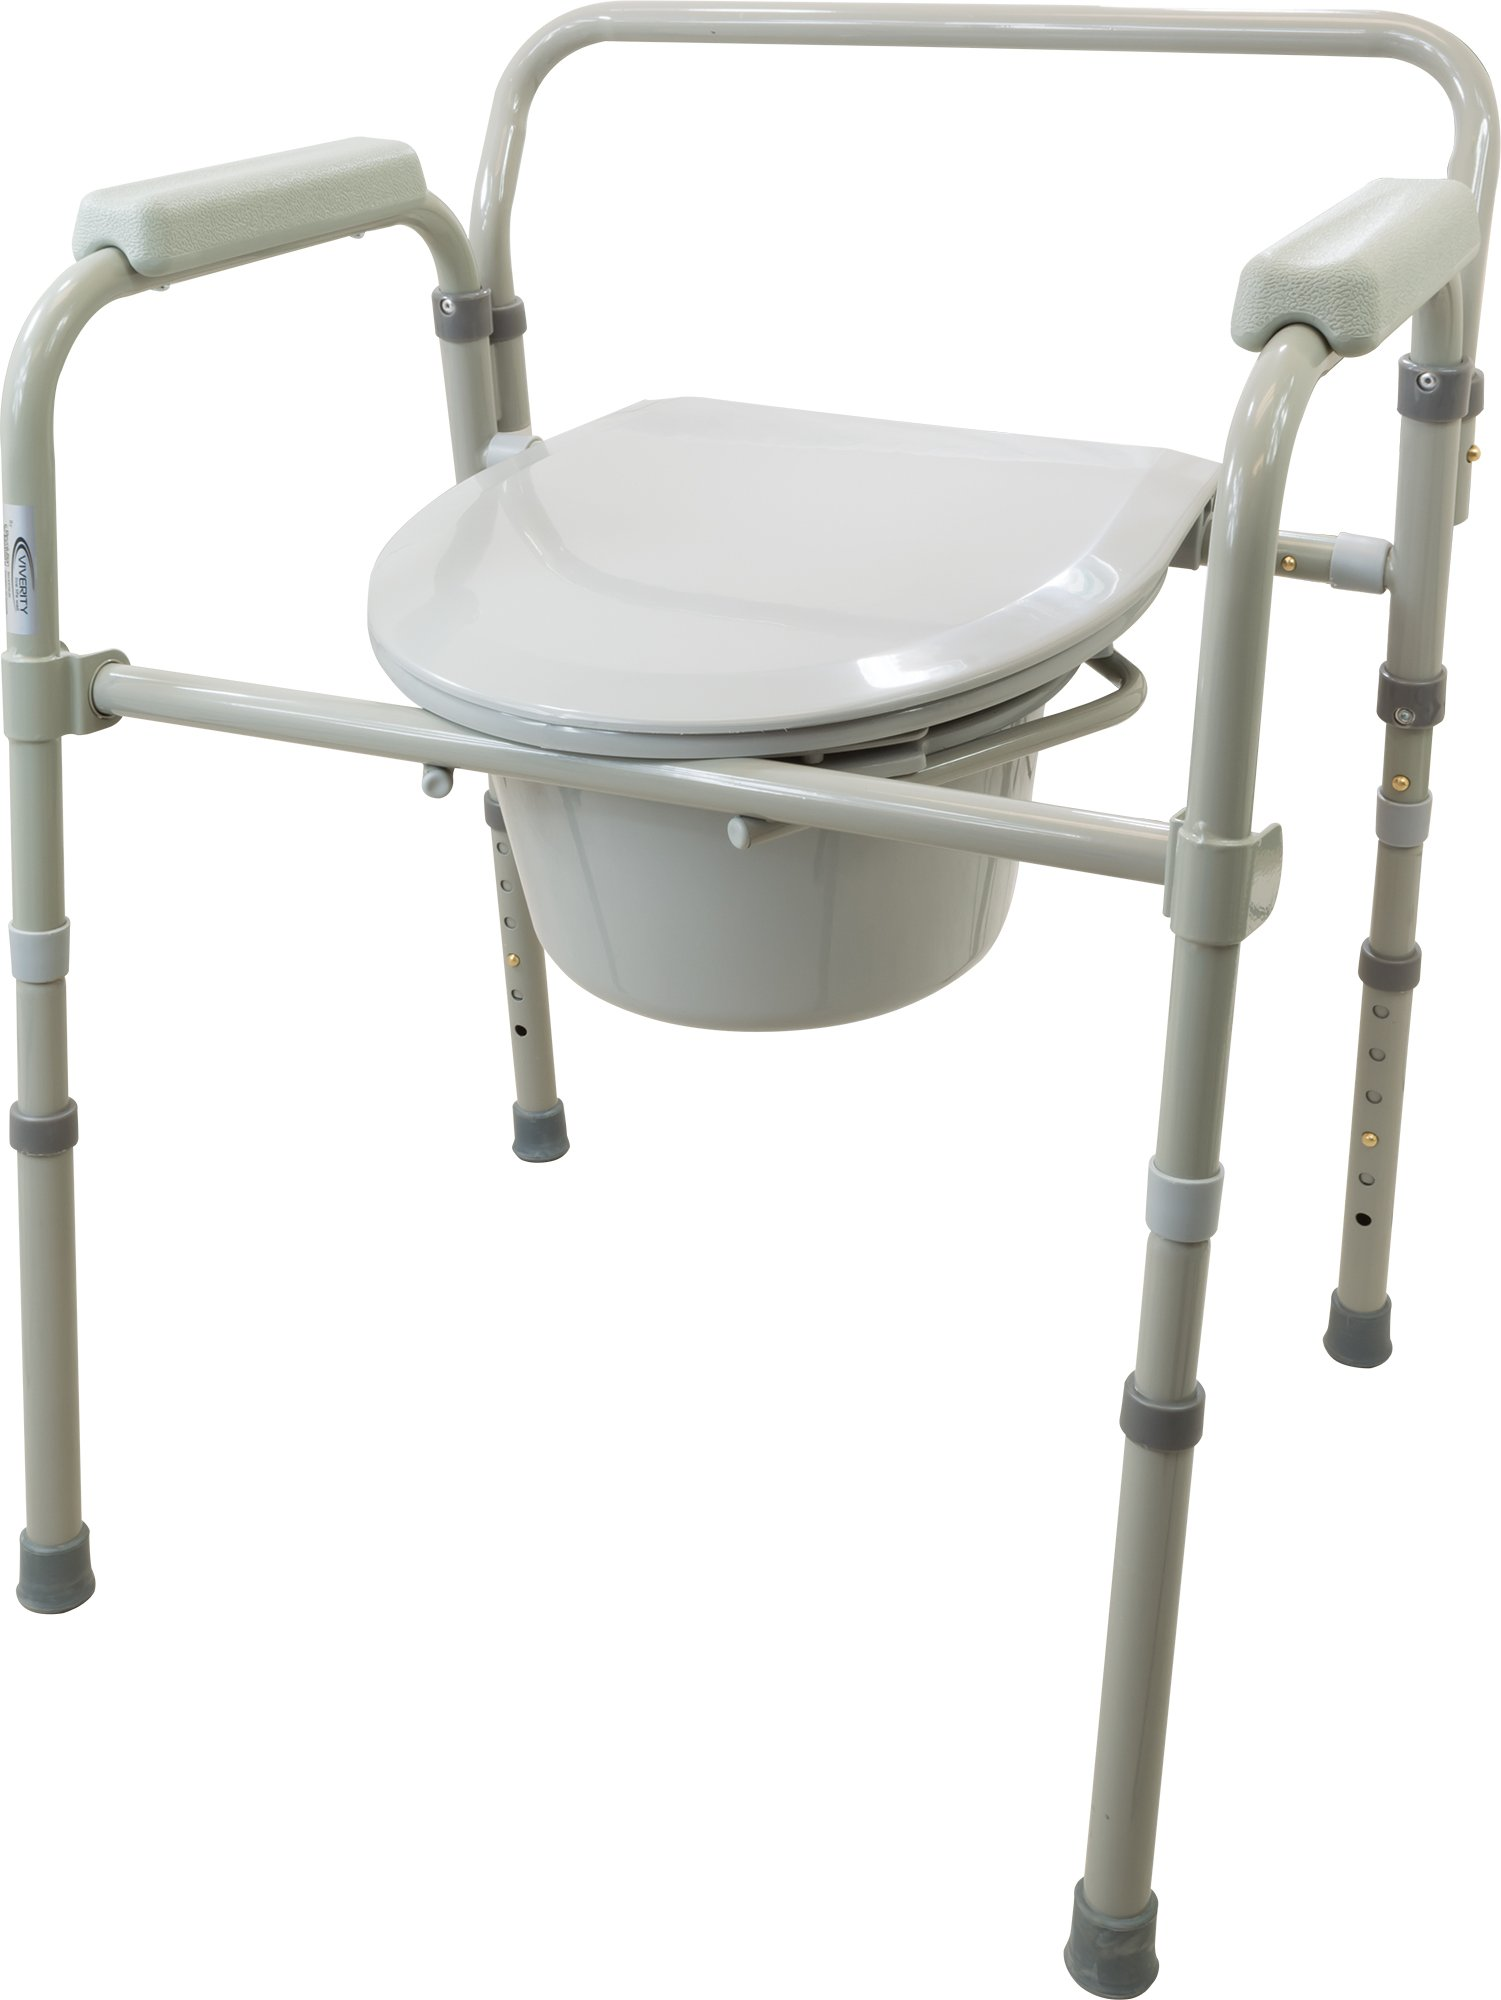 Viverity B105-2R 3-in-1 Folding Commode by Roscoe Medical (Image #1)